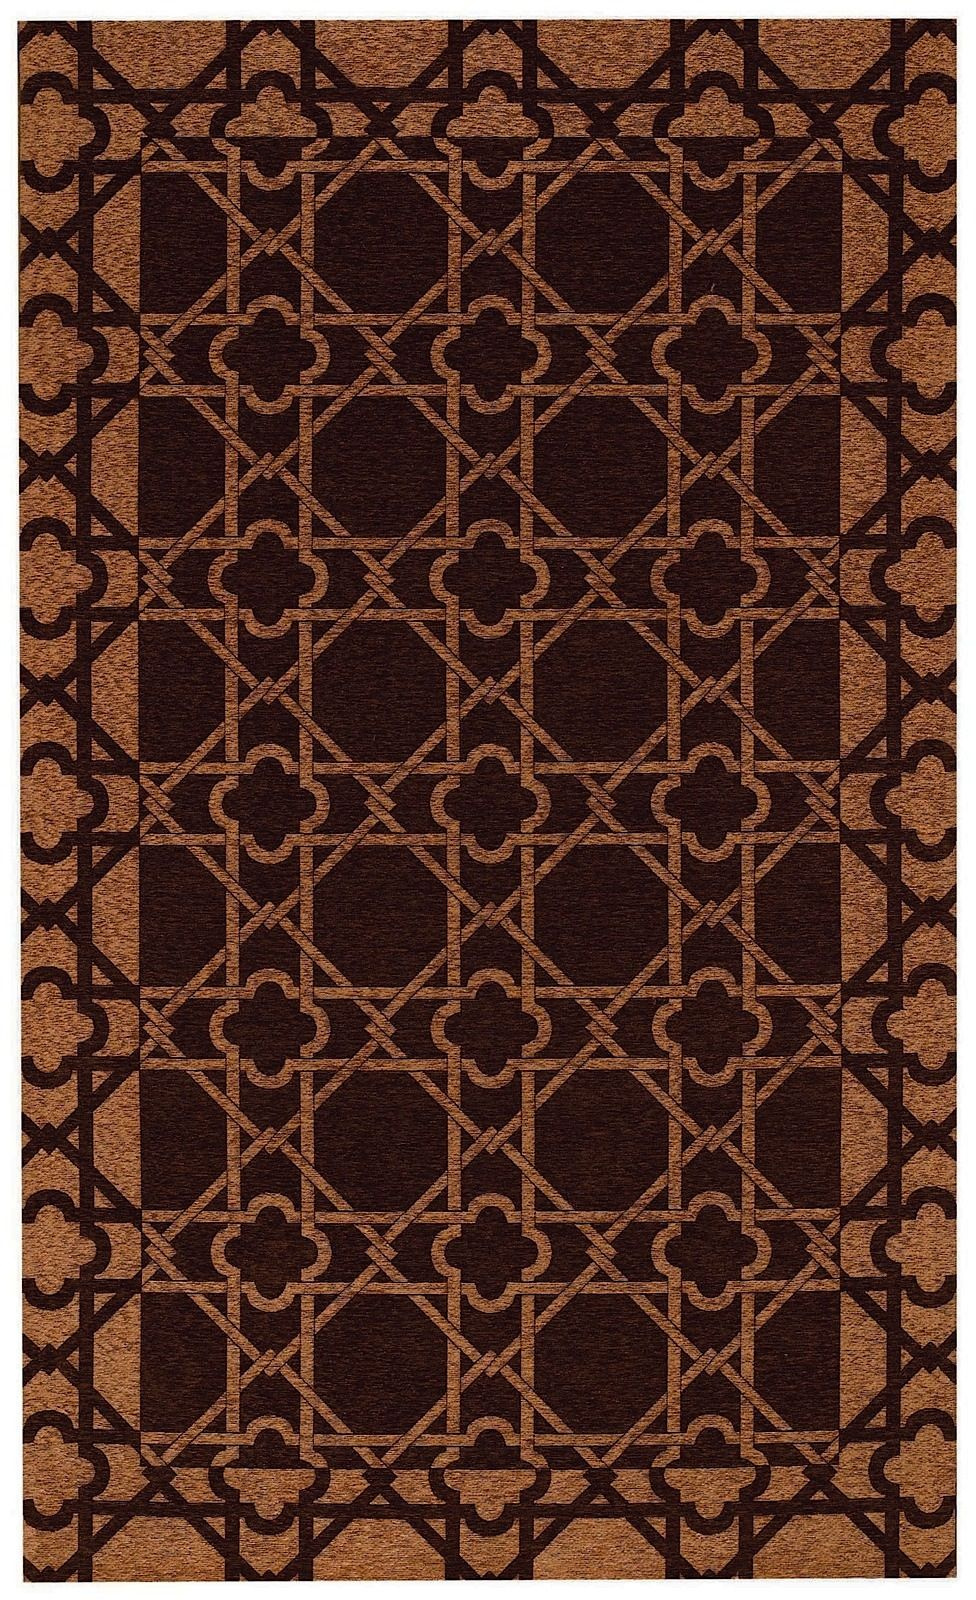 capel lattice contemporary area rug collection